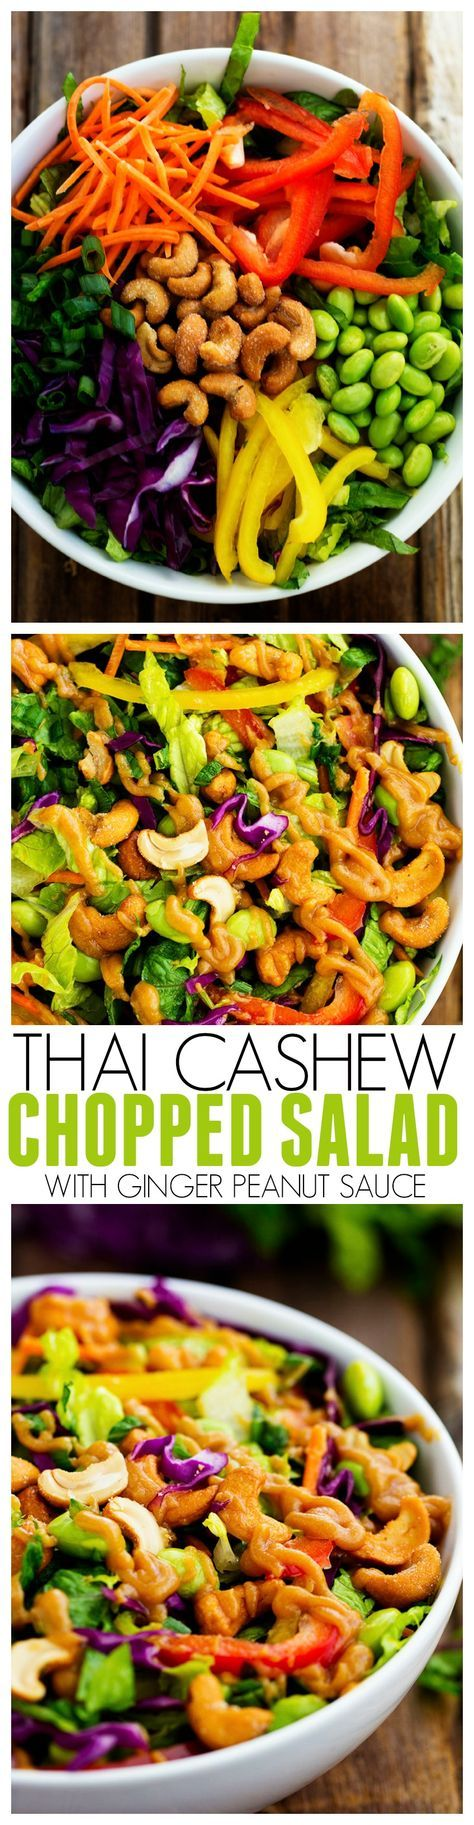 This Thai Cashew Chopped Salad is full of amazing colors and flavors!! The cashews give it an amazing crunch and the ginger peanut sauce is incredible! | The Recipe Critic